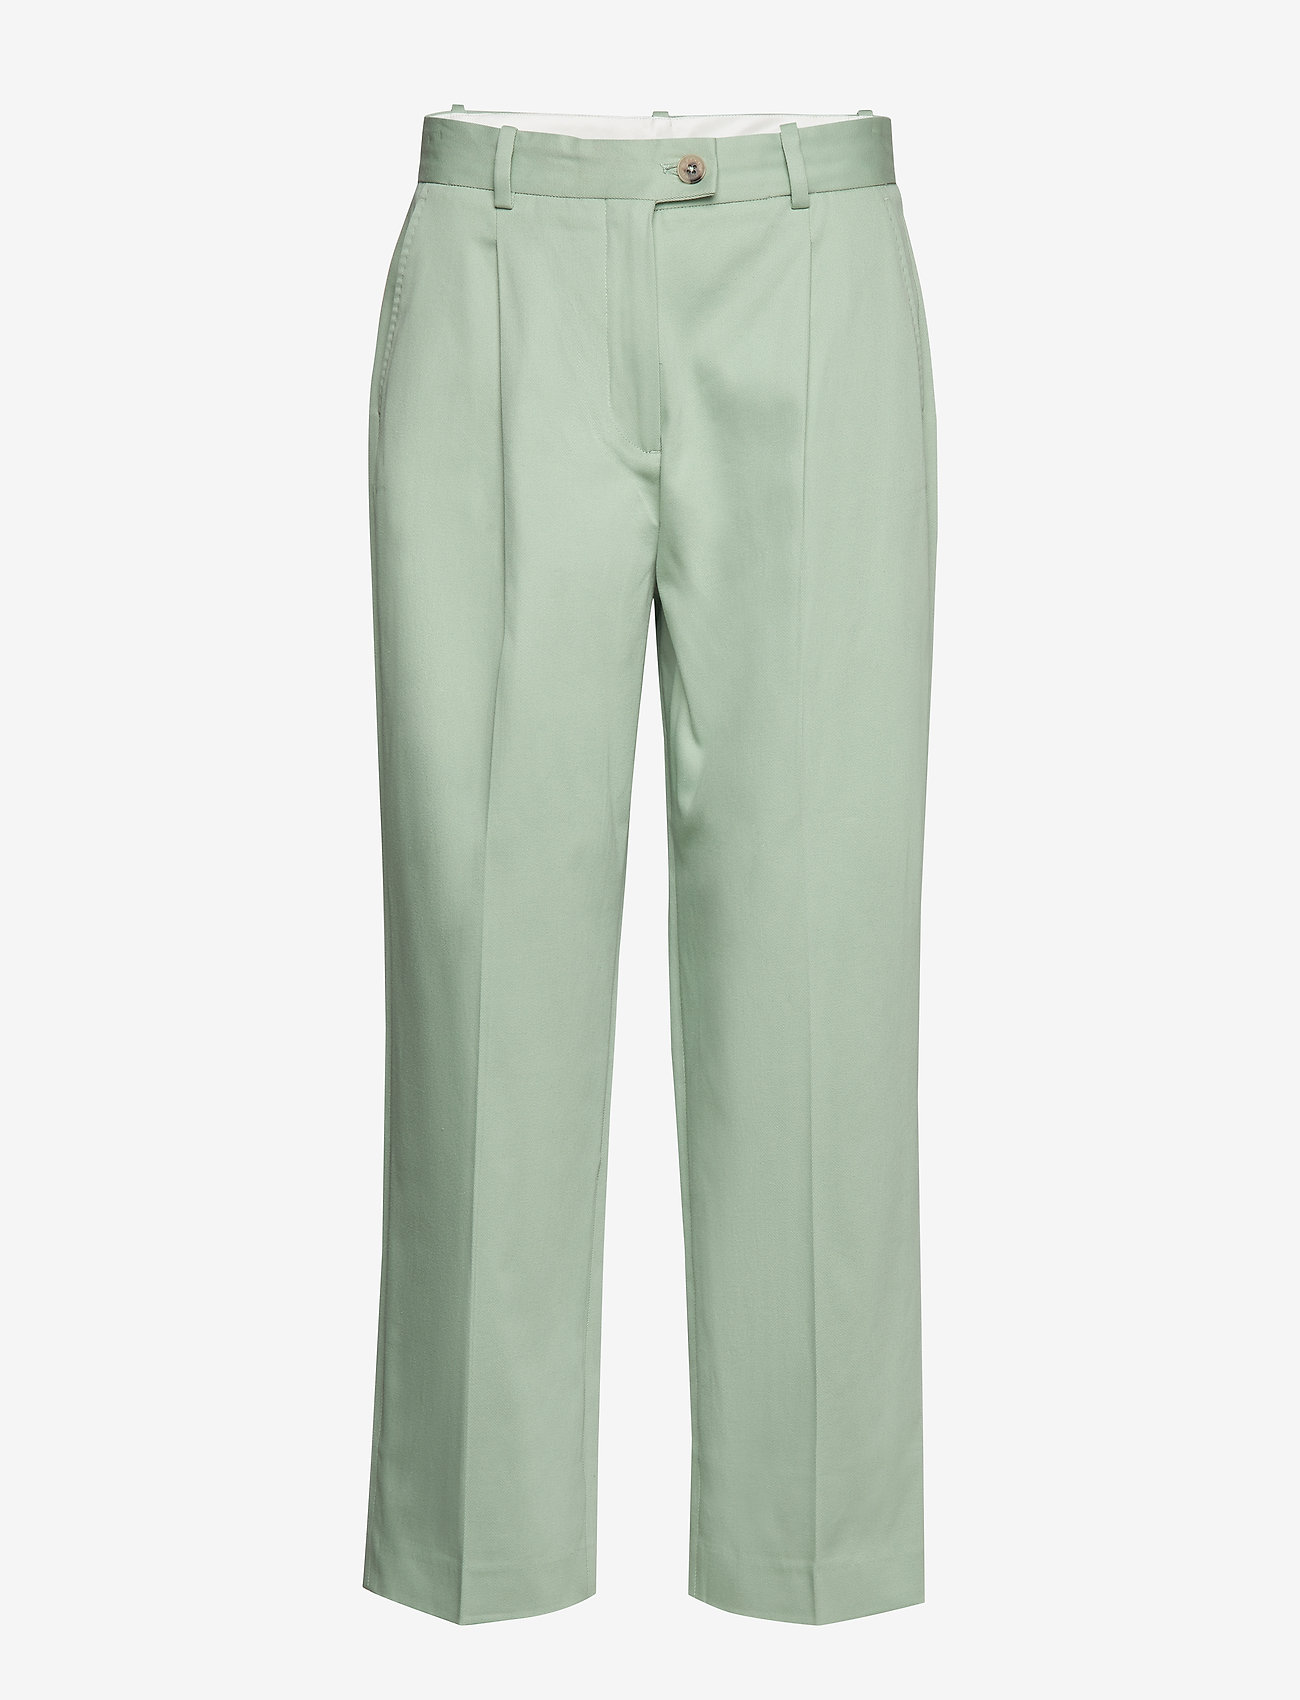 Tommy Hilfiger - COTTON PASTEL TAPERED PANT - straight leg trousers - sea mist mint - 1